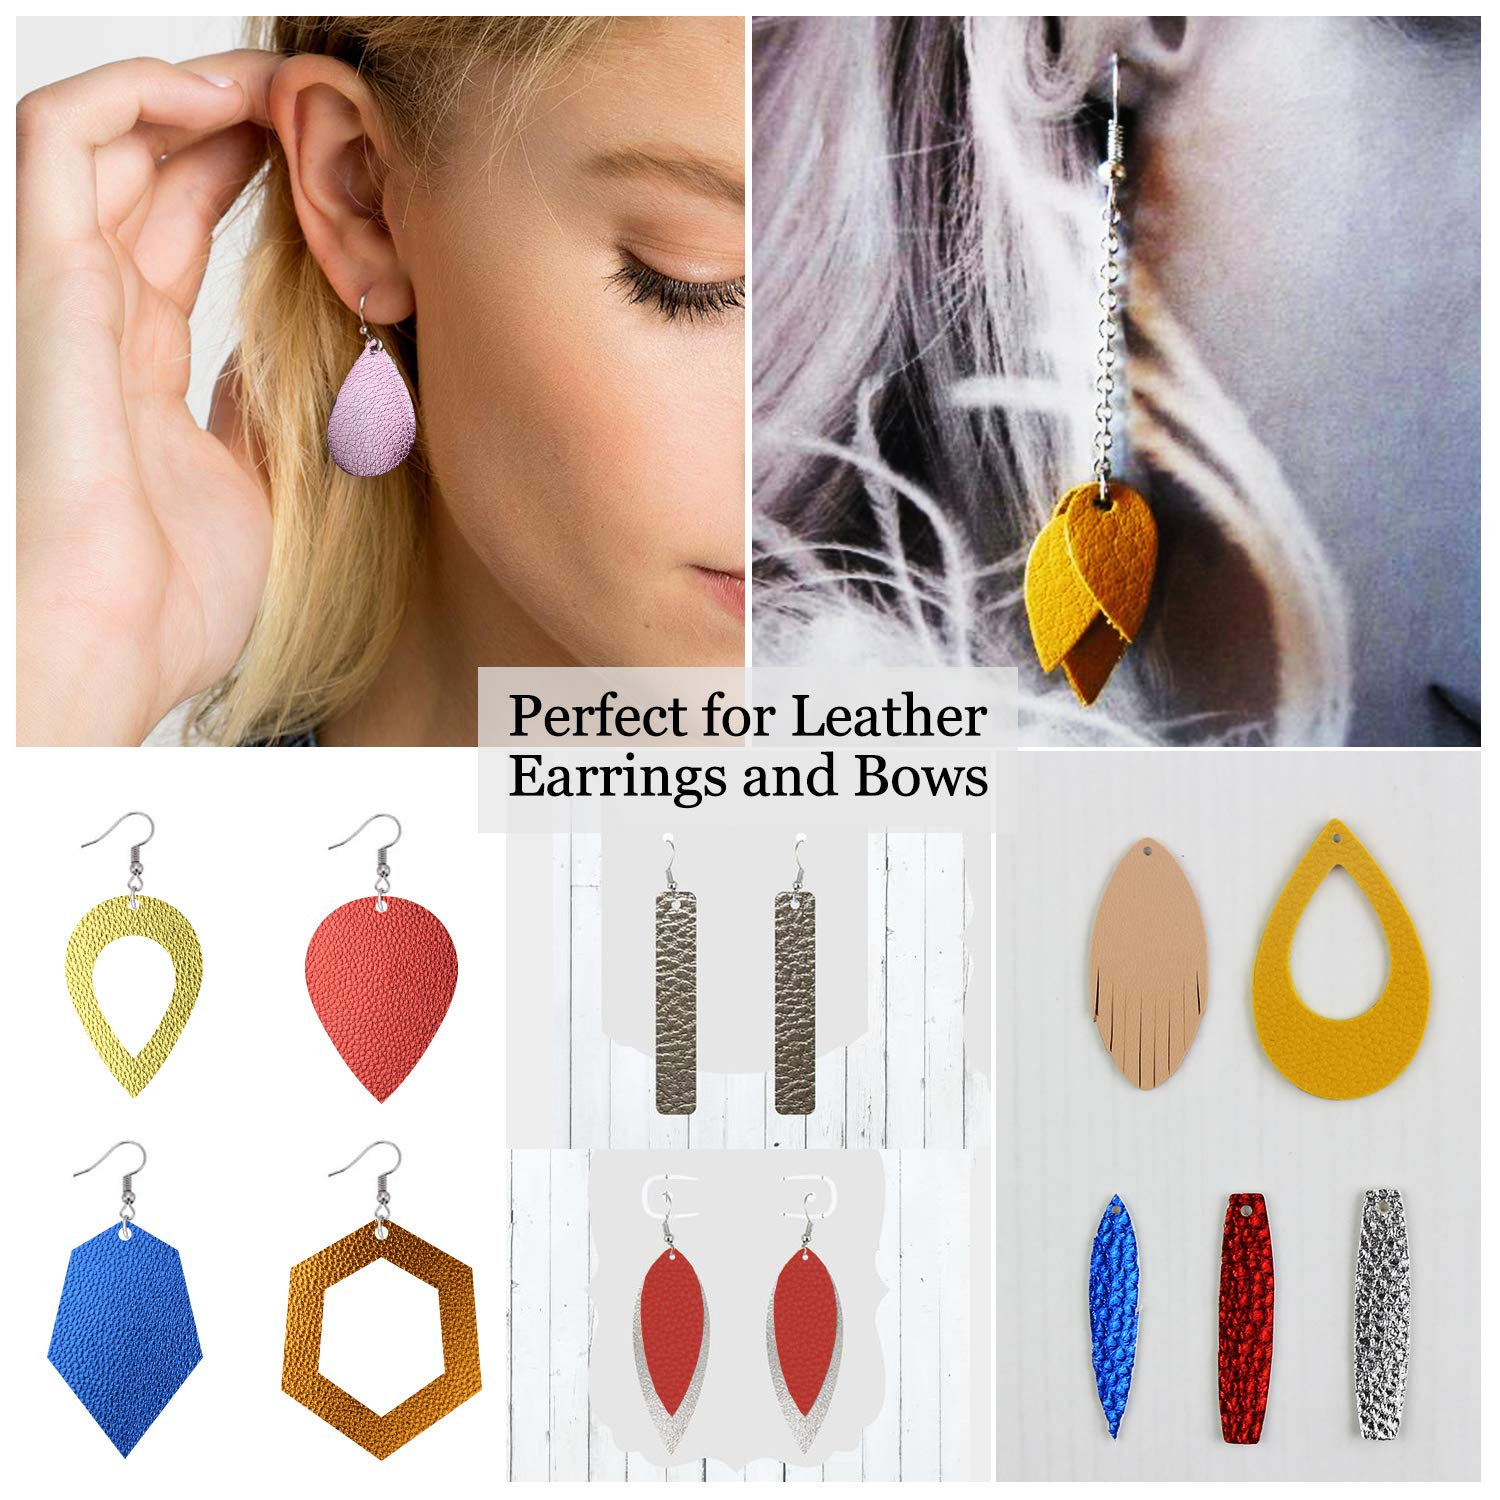 10pcs Metallic Faux Leather Sheets + 10pcs Double Sided Litchi Synthetic Leather Fabric Sheets(6''x 6'') with 140pcs Earring Hooks, 140pcs Jump Rings, Pliers and Cut Molds for Earring Making Crafts by SIMPZIA (Image #7)